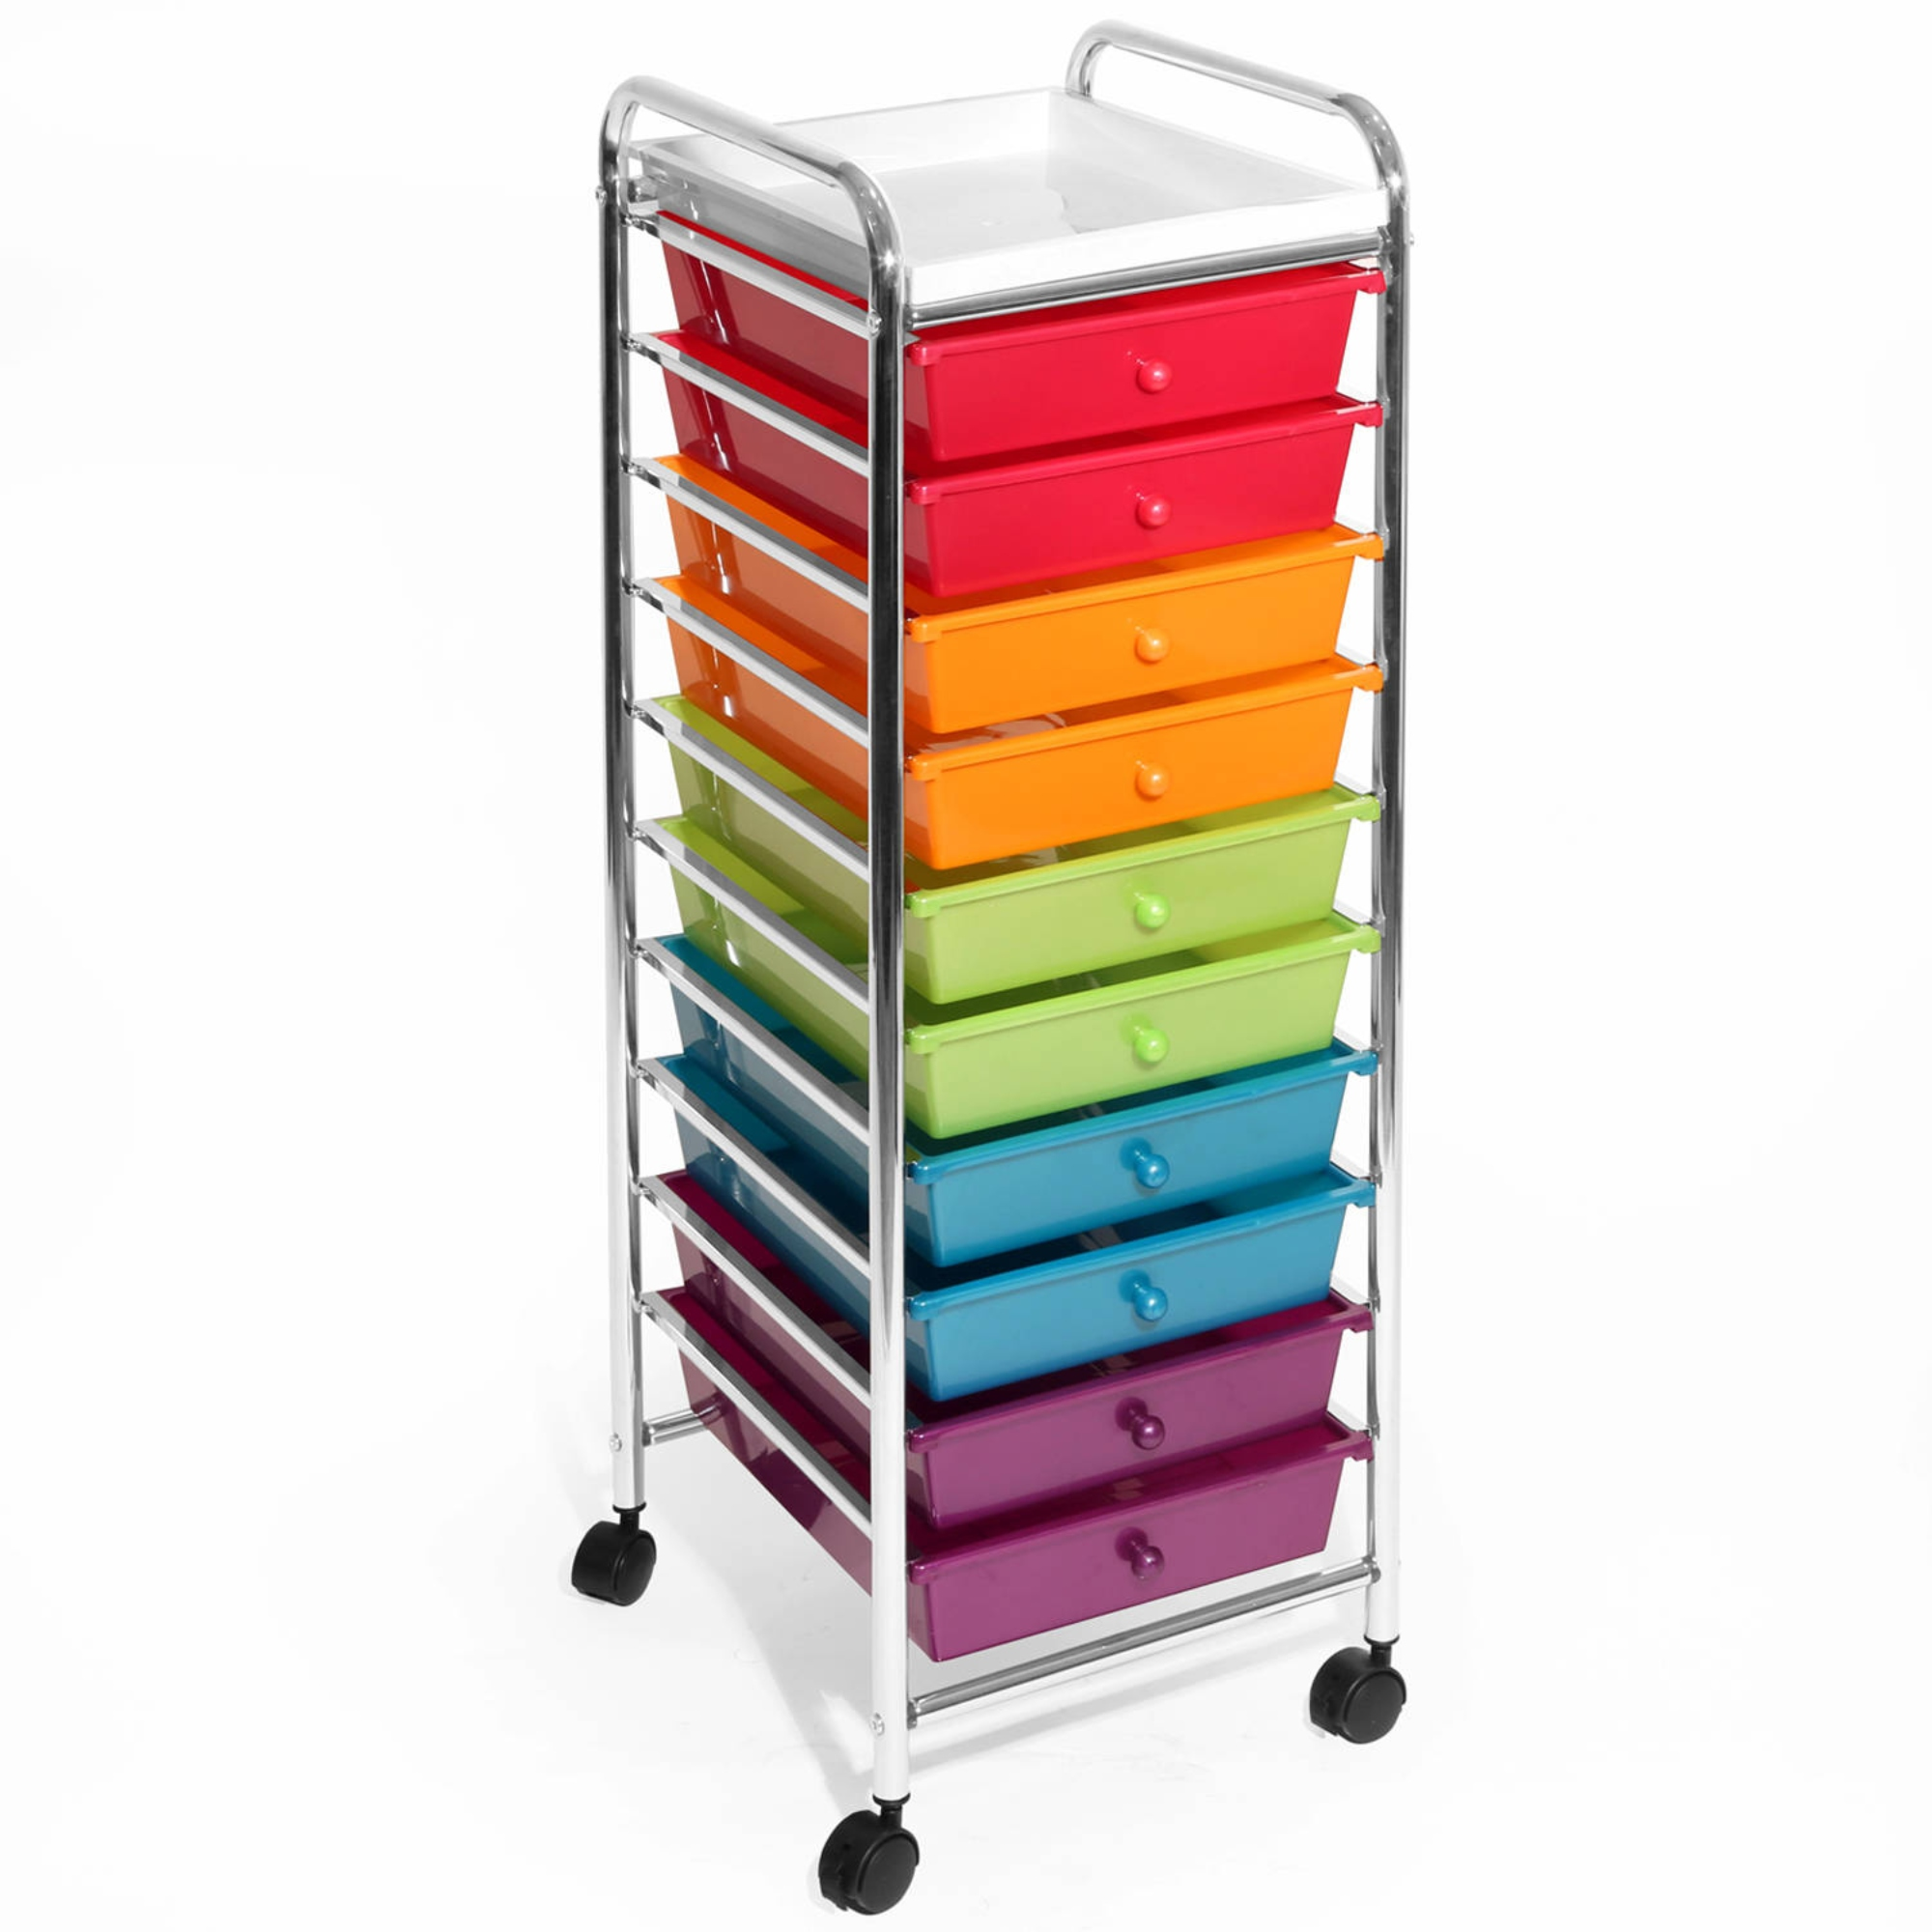 10-Drawer Organizer Cart w/ Wheels, Pearl Multi-Color by Seville Classics